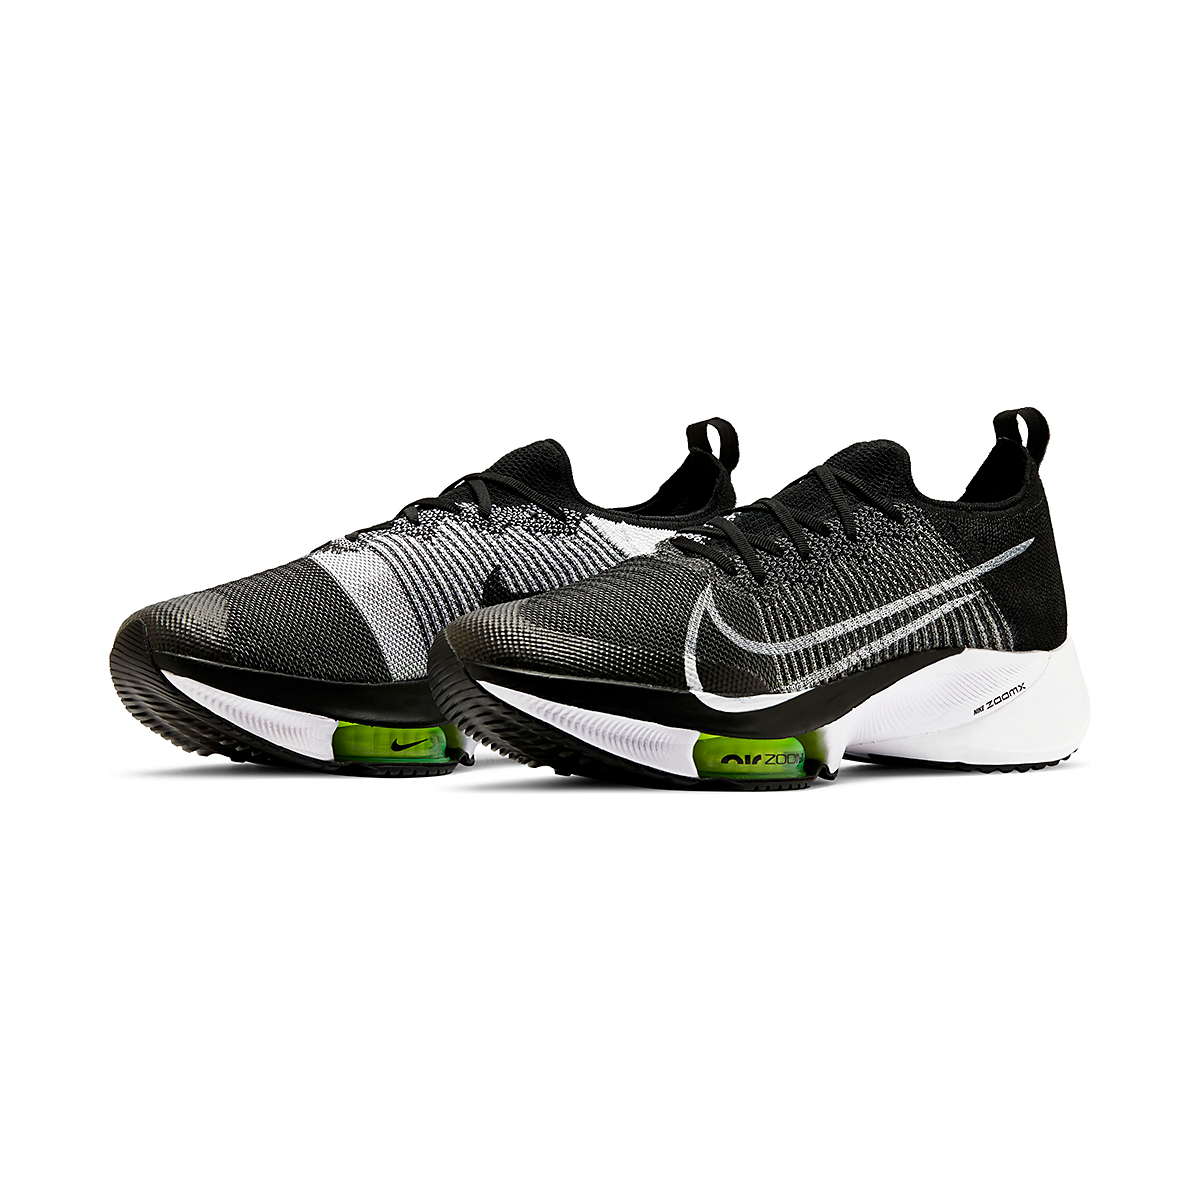 Men's Nike Air Zoom Tempo NEXT% Running Shoe - Color: Black/White-Volt - Size: 6 - Width: Regular, Black/White-Volt, large, image 4